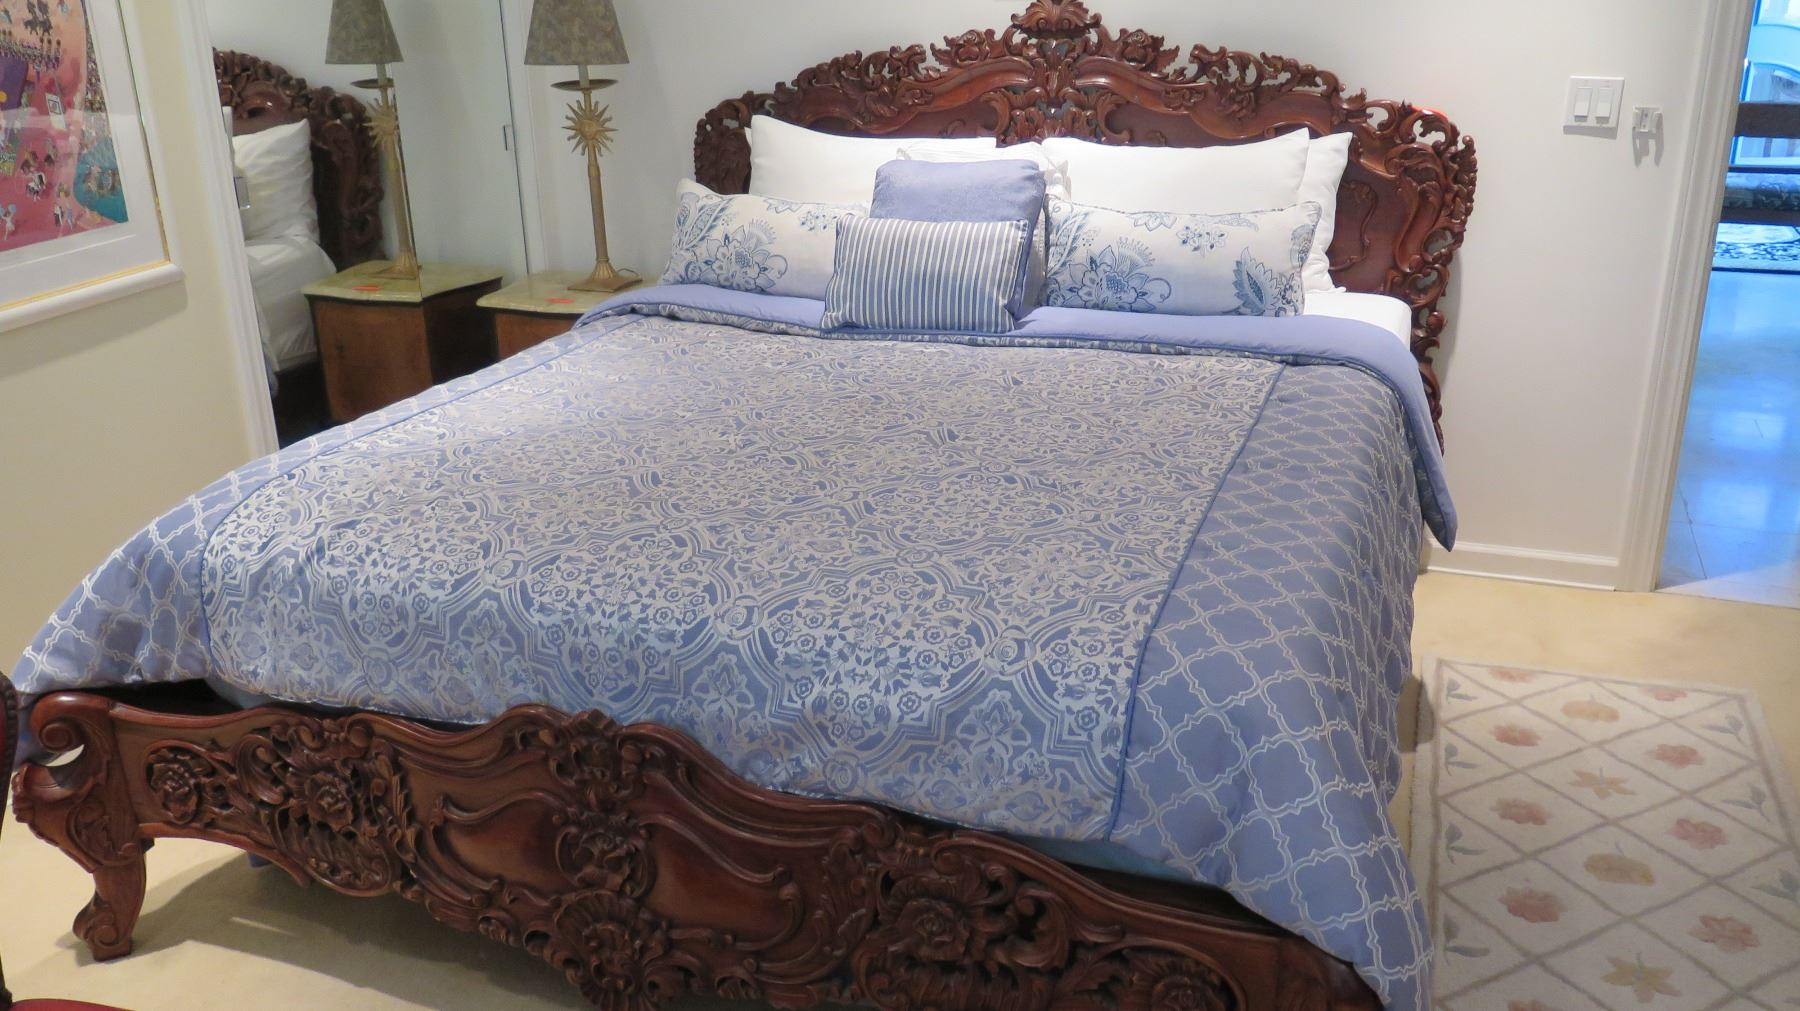 King Size Ornate Carved Wooden Bed Sheets Comforter Pillows Not